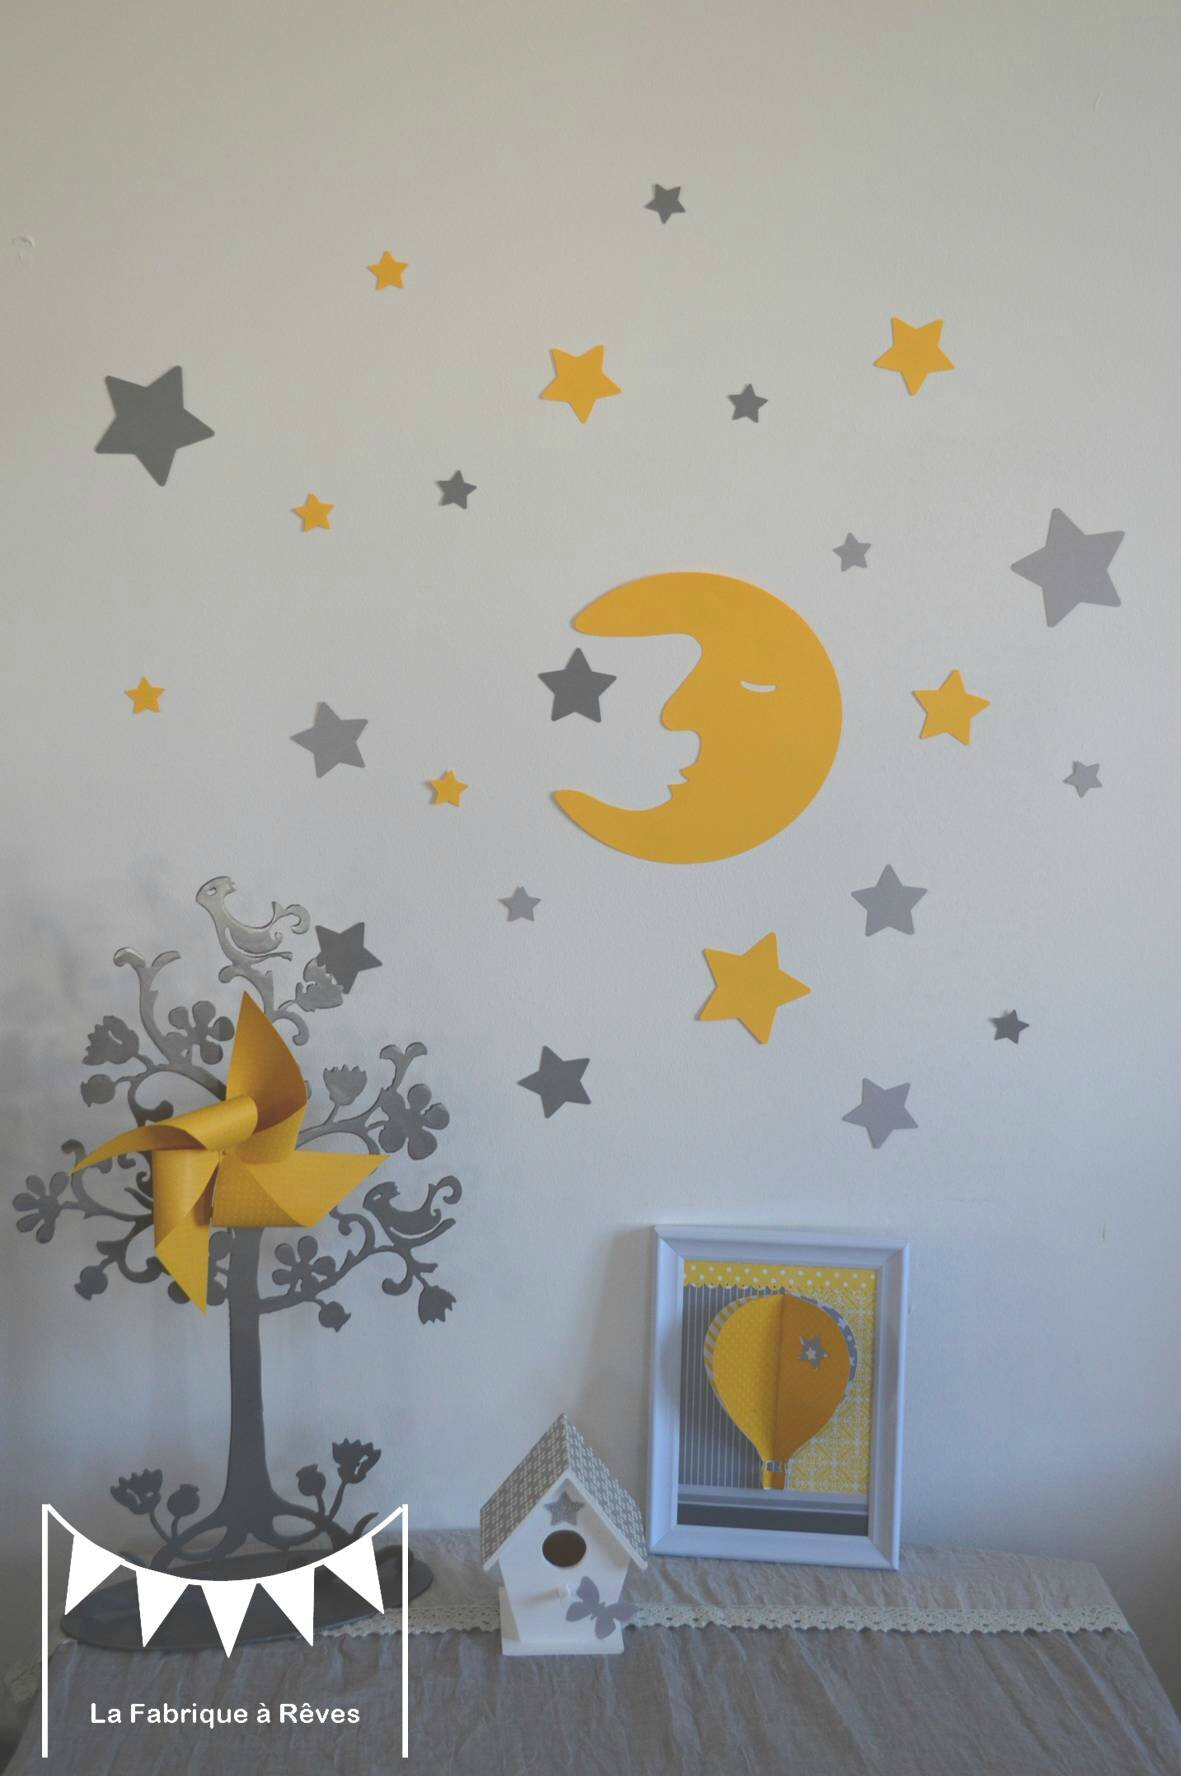 stickers d coration chambre enfant fille b b gar on lune et toiles jaune gris photo de th me. Black Bedroom Furniture Sets. Home Design Ideas